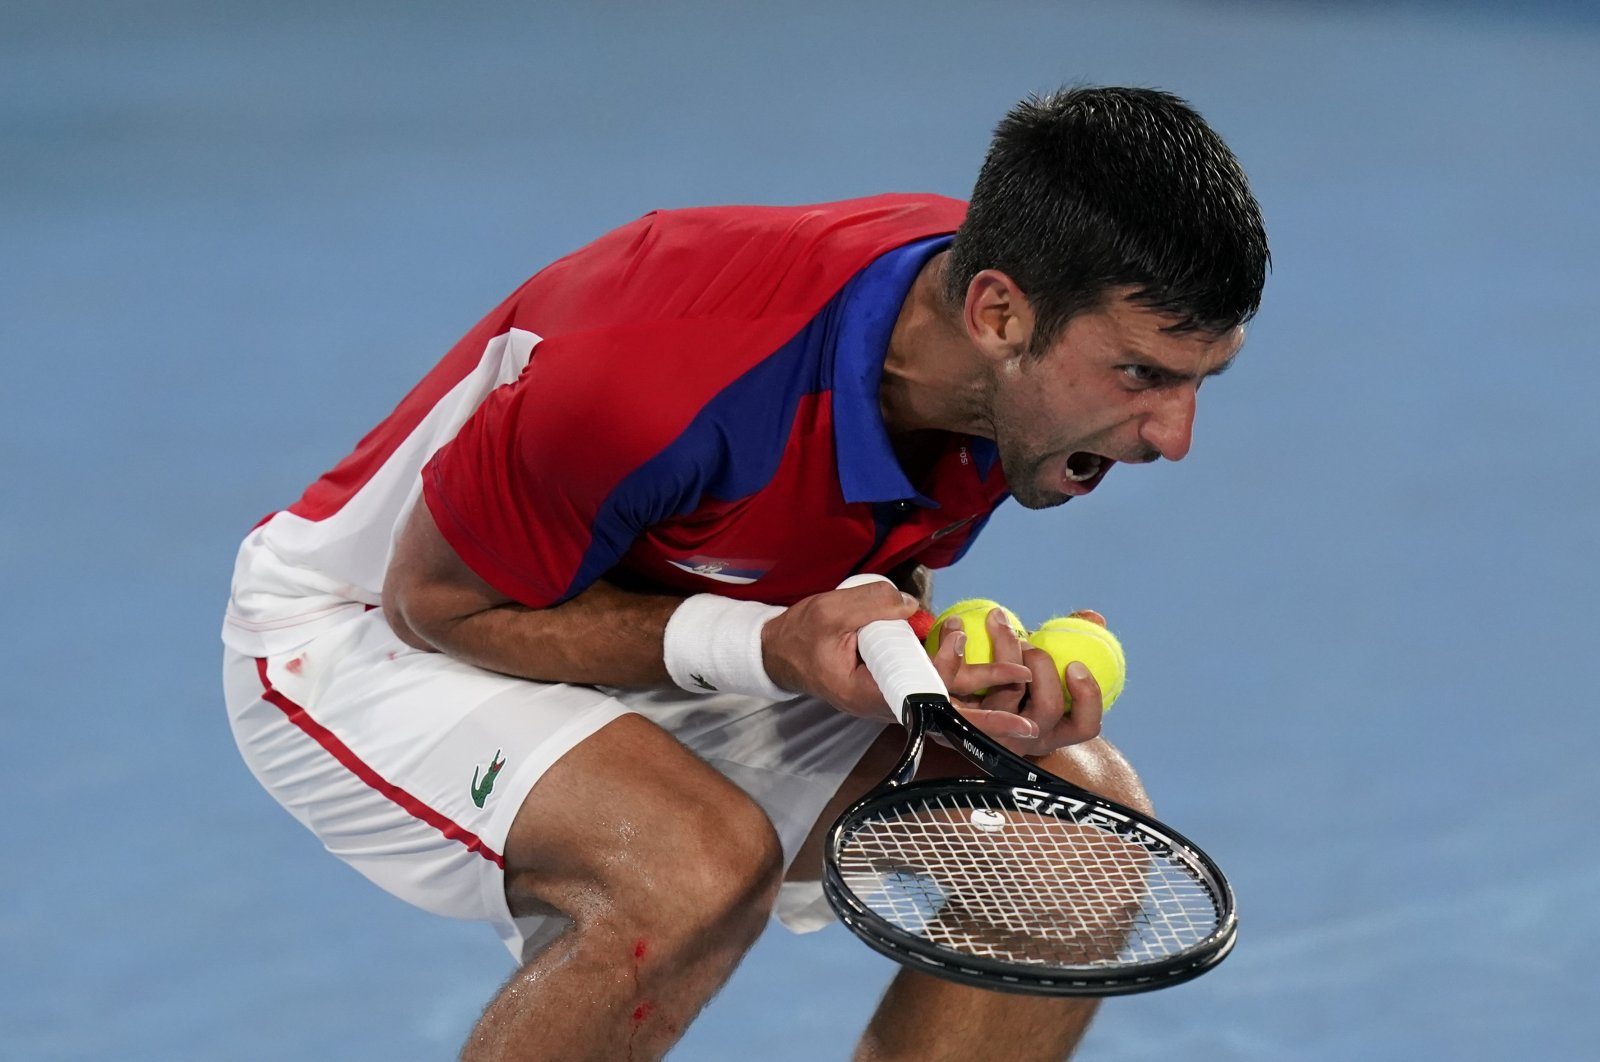 Novak Djokovic, of Serbia, reacts during a semifinal men's tennis match against Alexander Zverev, of Germany, at the 2020 Summer Olympics, Tokyo, Japan, Friday, July 30, 2021. (AP Photo)